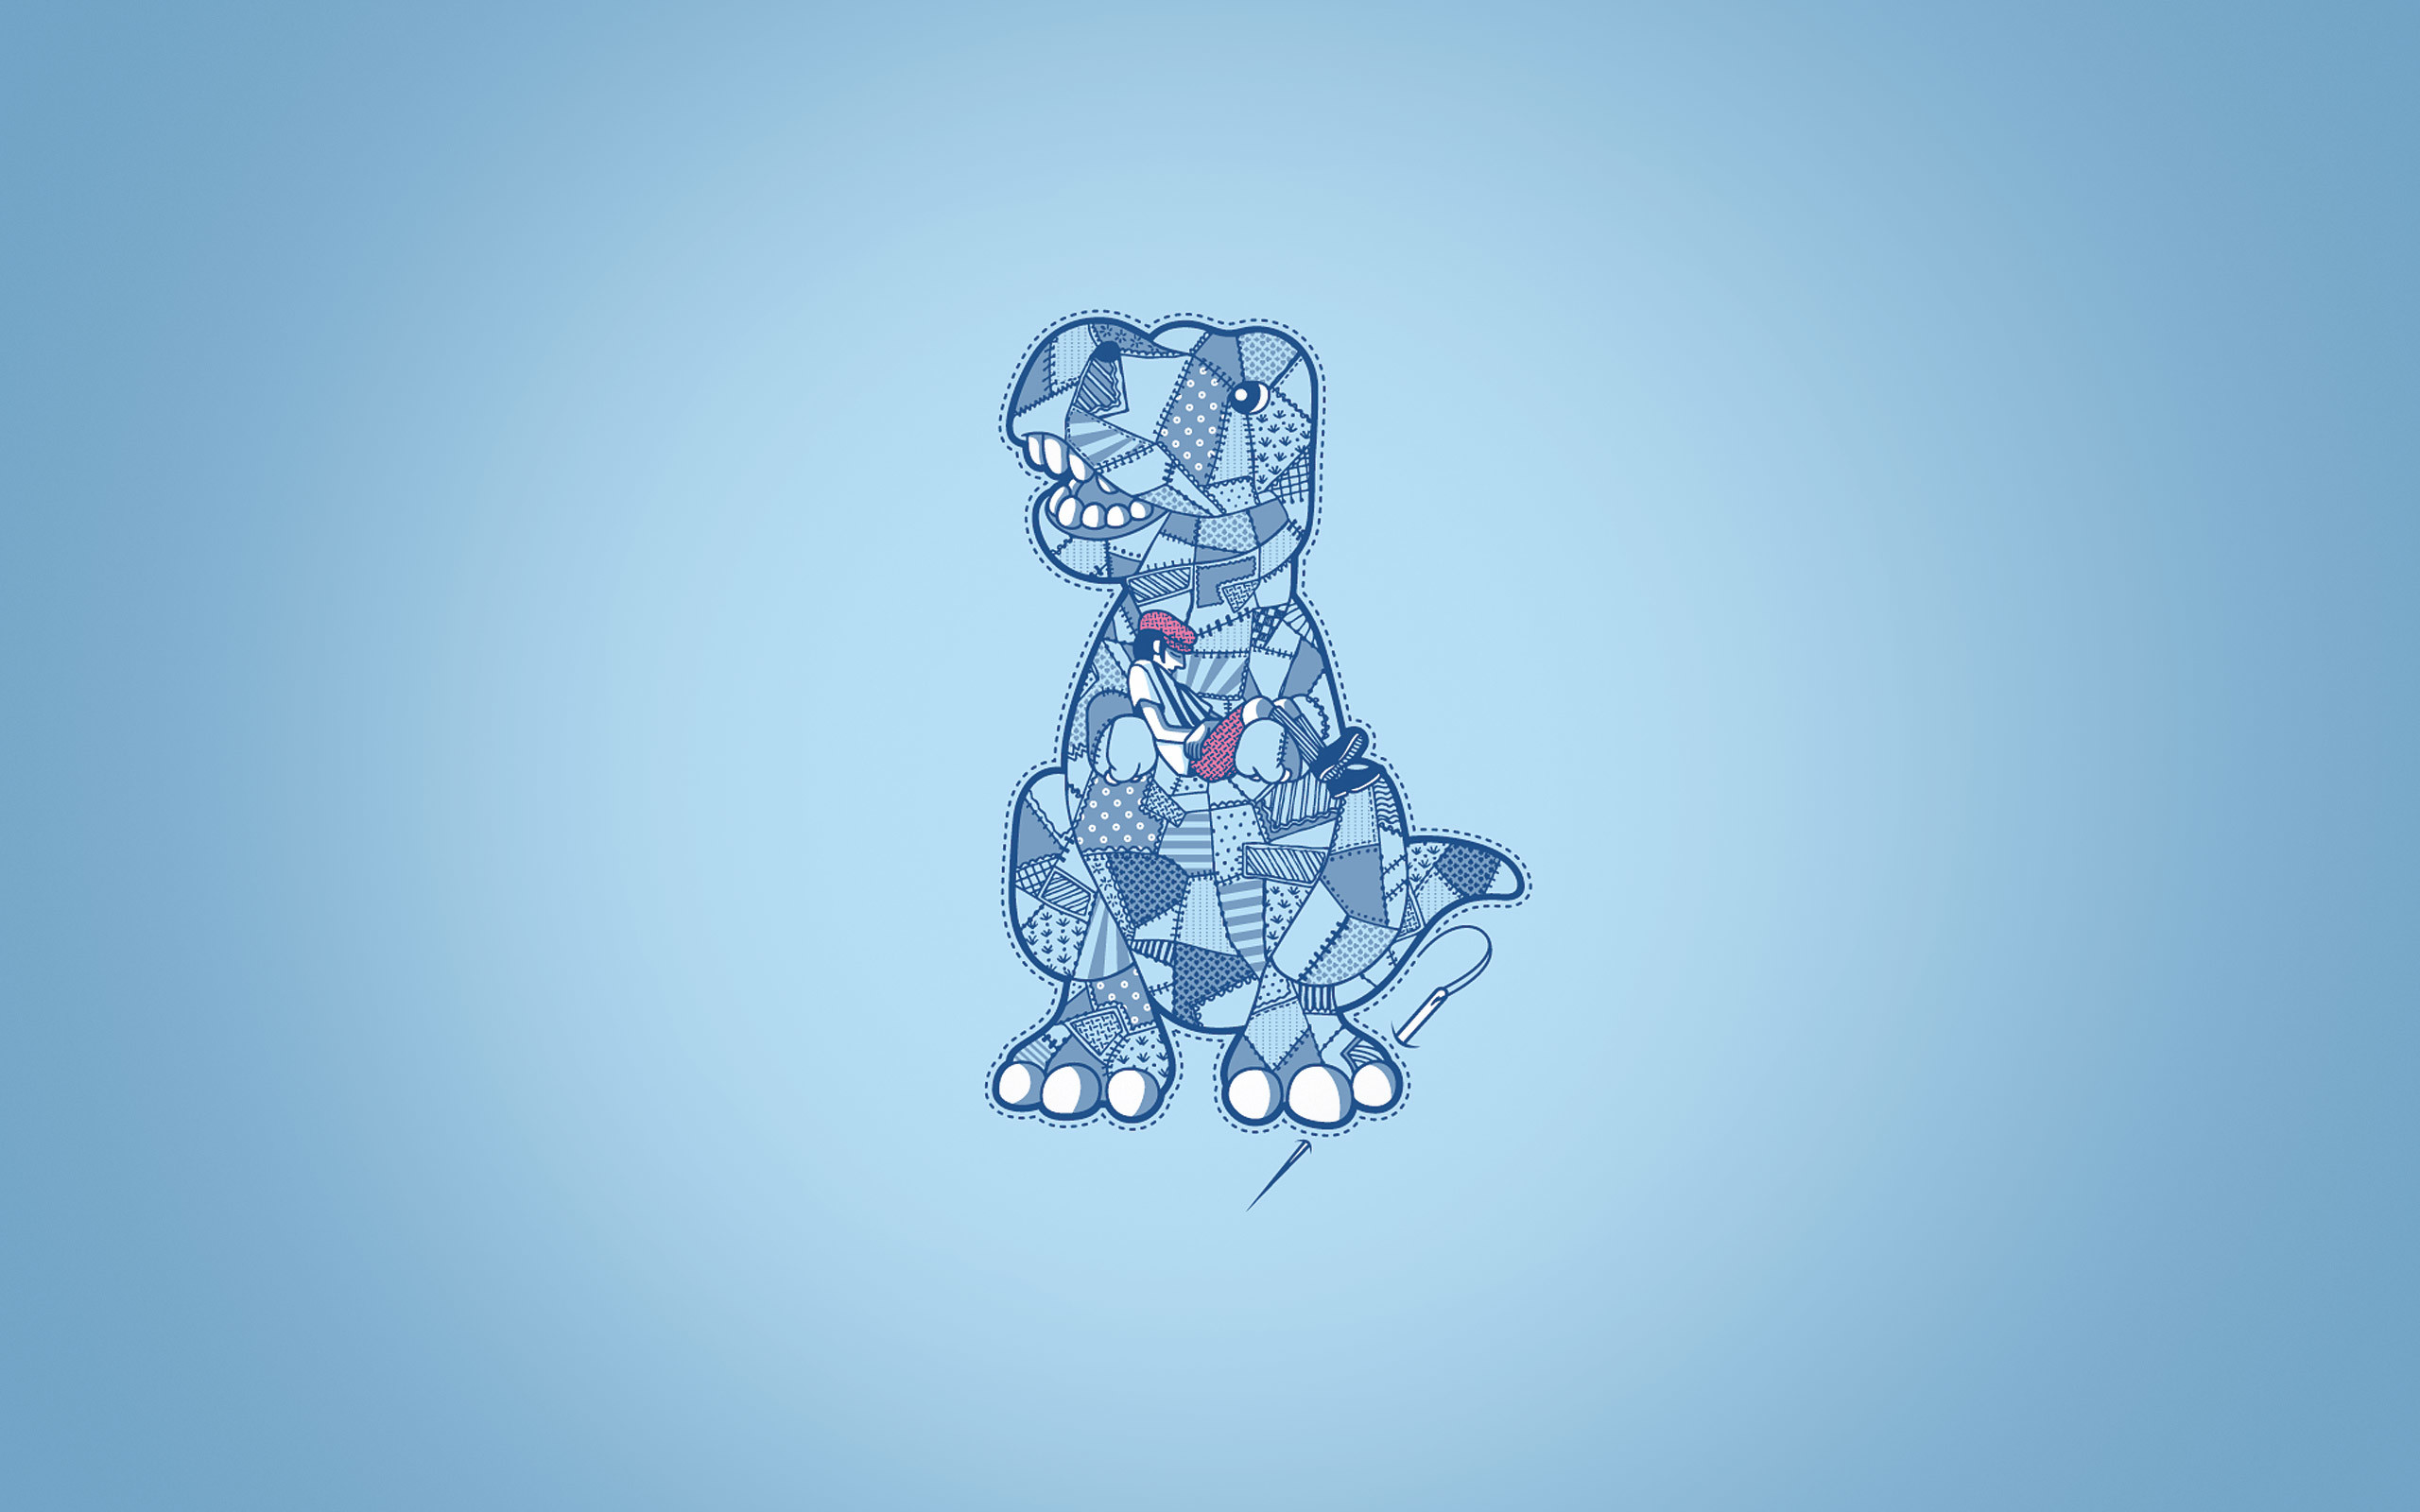 Res: 2560x1600, Patchwork Dinosaur Wallpaper